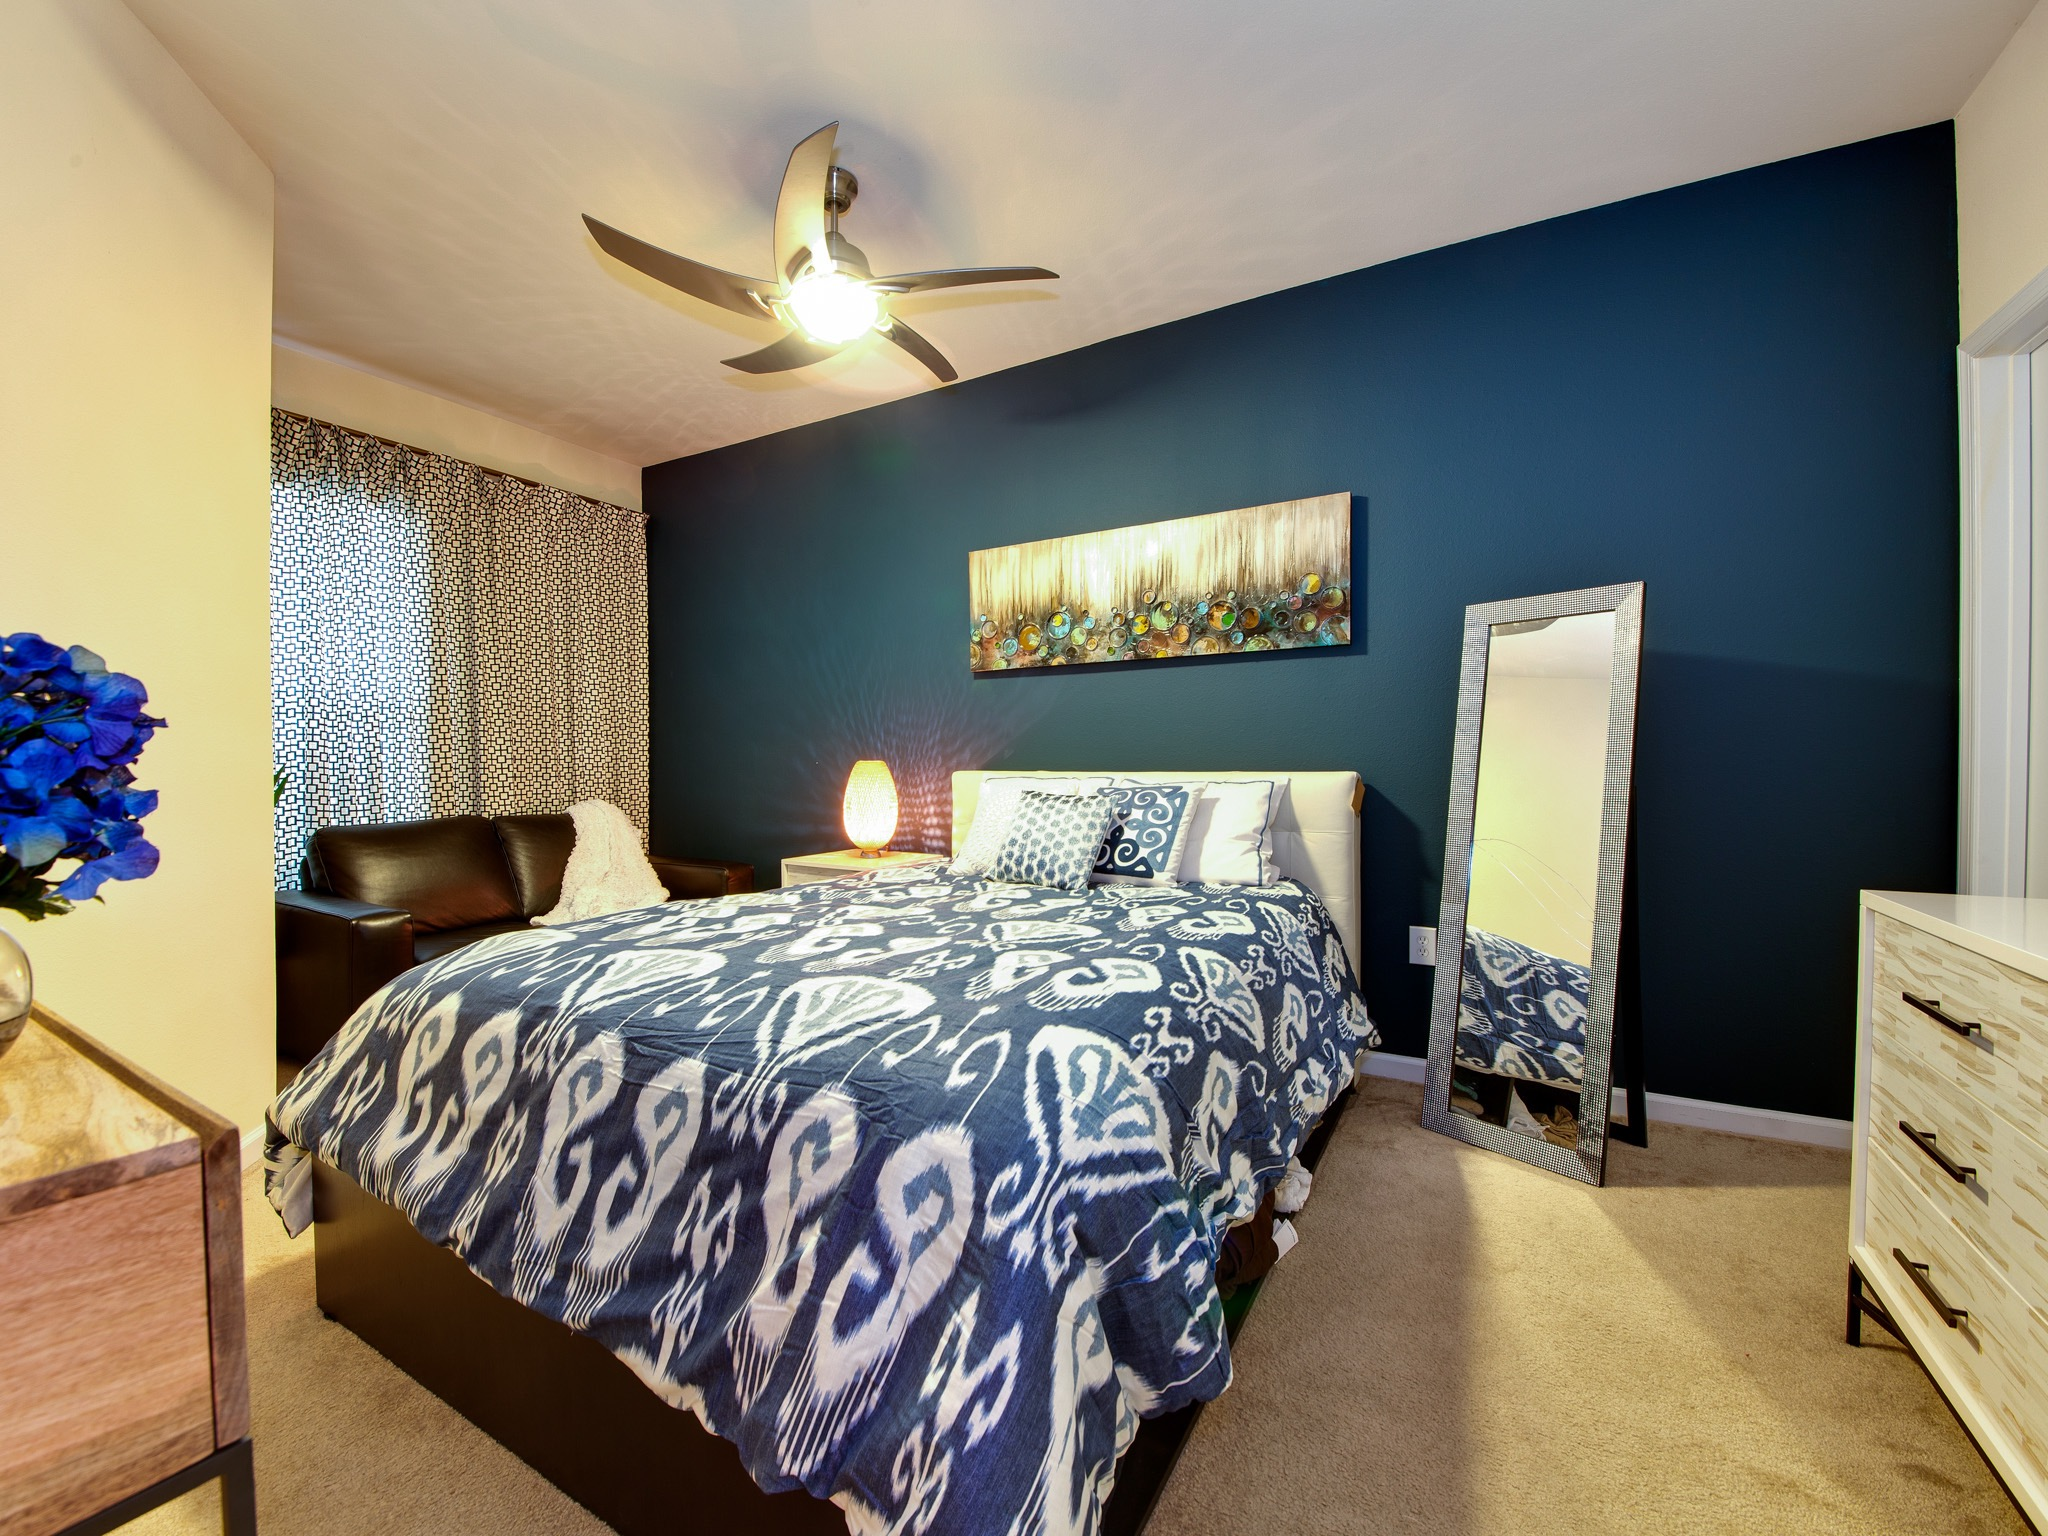 Peacock Bedroom Decorating Ideas Peacock Themed Bedroom With Luxurious Feeling 16414